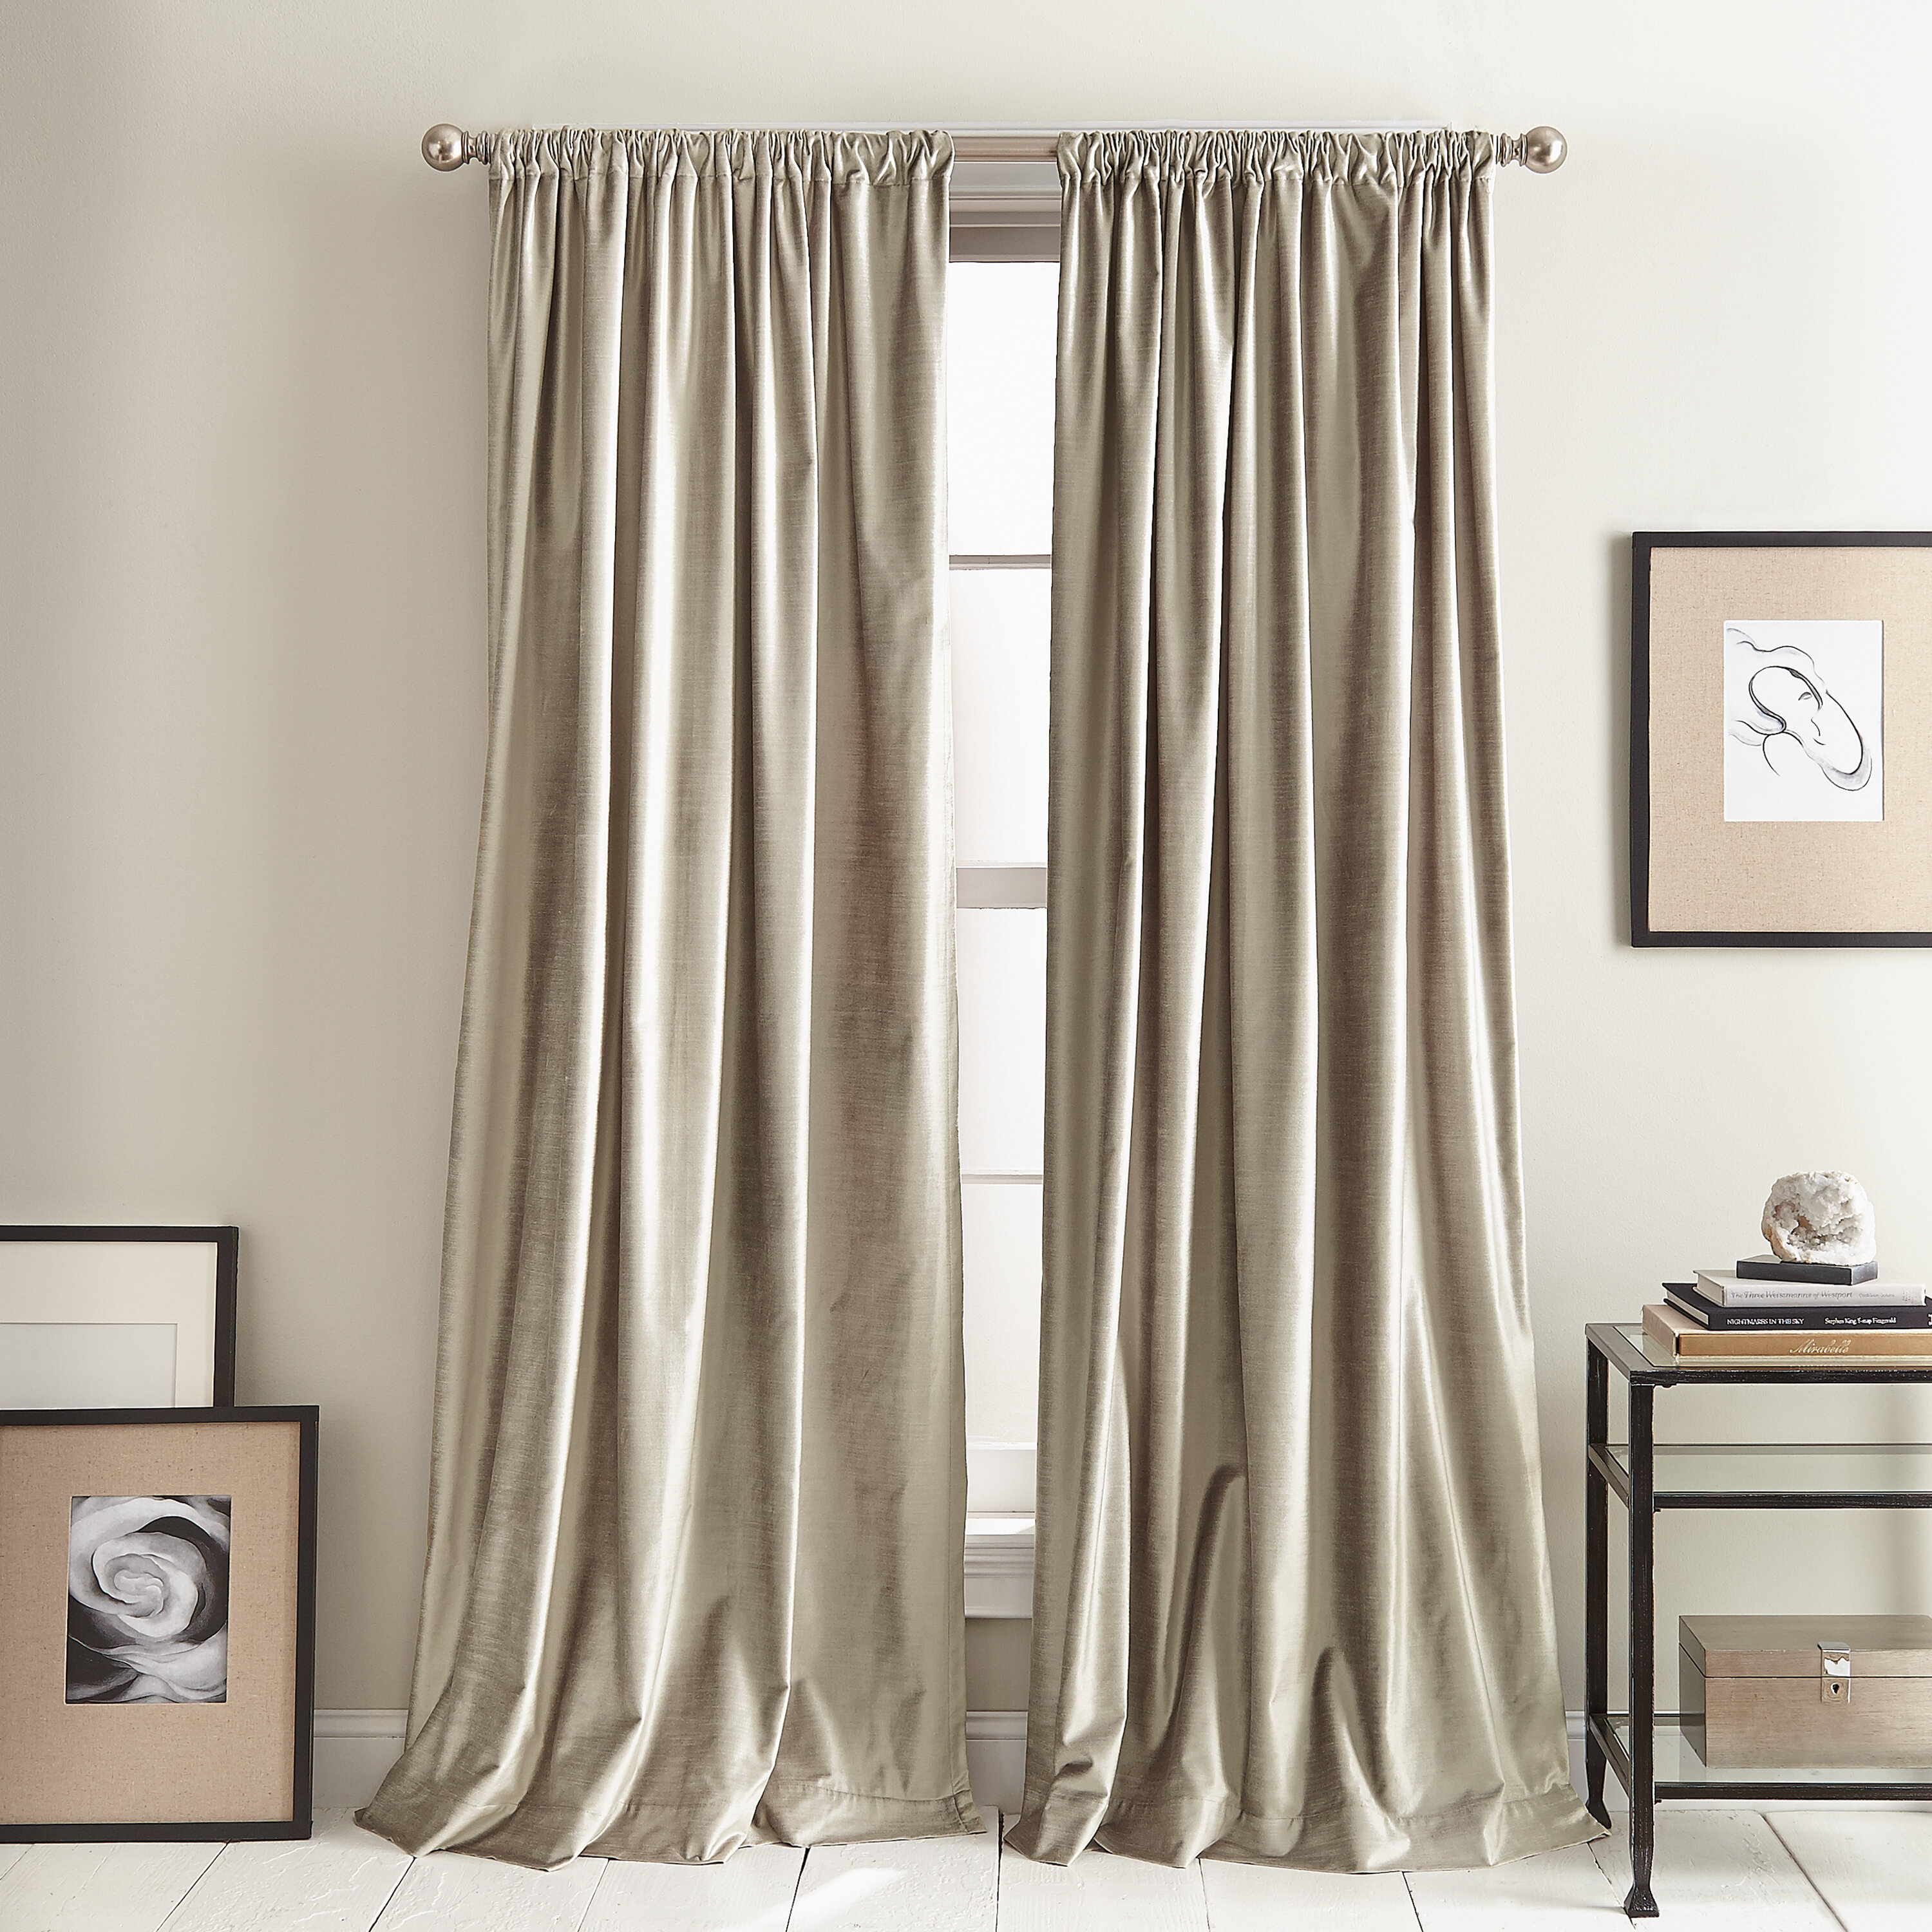 Dkny Modern Knotted Cotton Blend Solid Room Darkening Rod Pocket Curtain Panels Reviews Wayfair